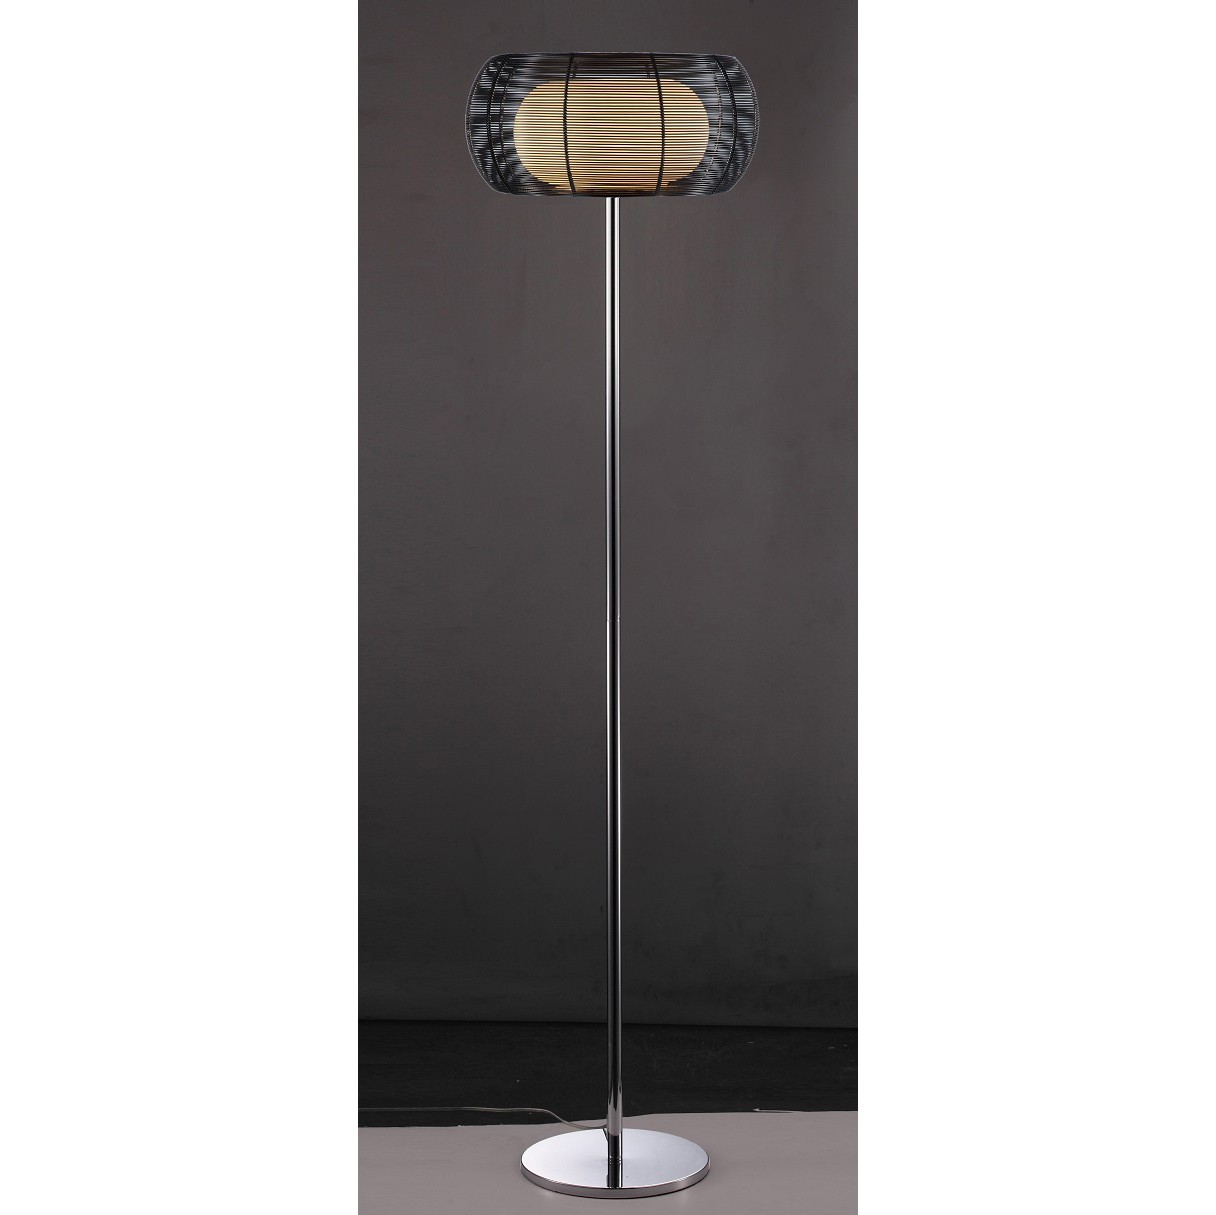 led stehlampe design francise h 160cm schwarz. Black Bedroom Furniture Sets. Home Design Ideas